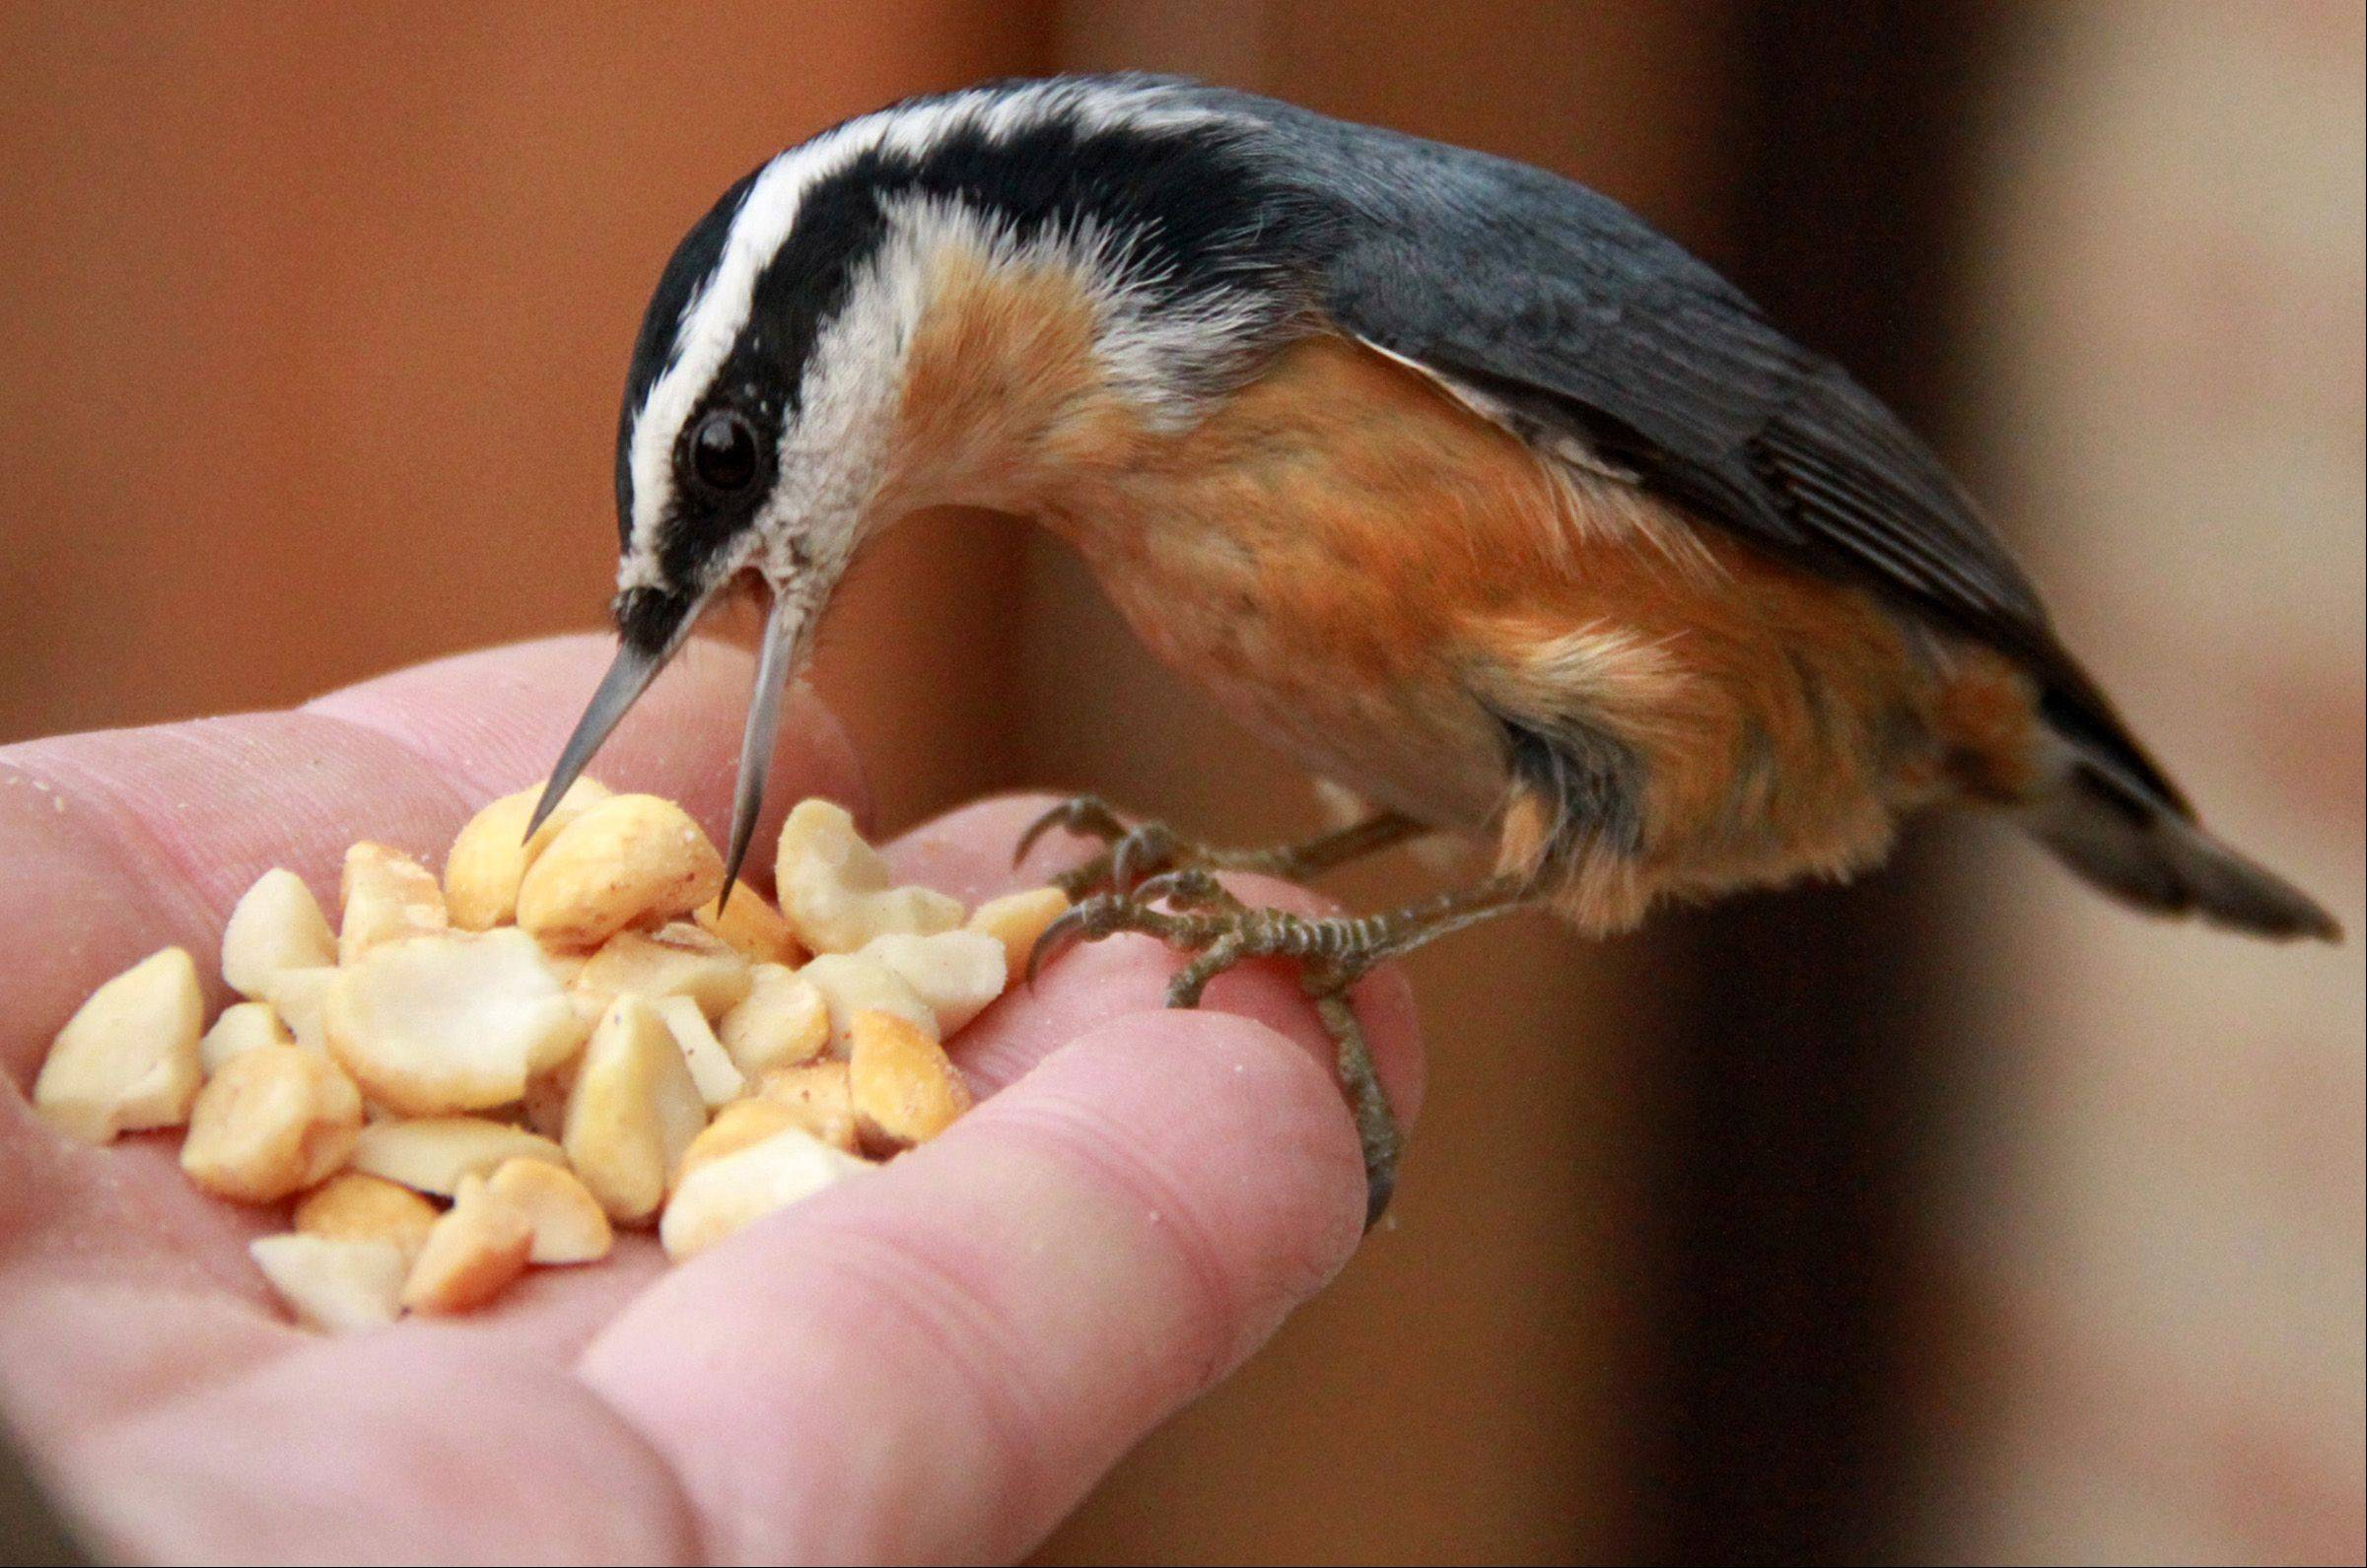 Daily Herald photographer George LeClaire entices a Red-Breasted Nuthatch to land on his hand using peanuts in Glenview. Many Illinois residents have posted on Illinois Audubon Society Facebook page that they have spotted large numbers of the bird for the first time since 2007 and 1989 migrations.